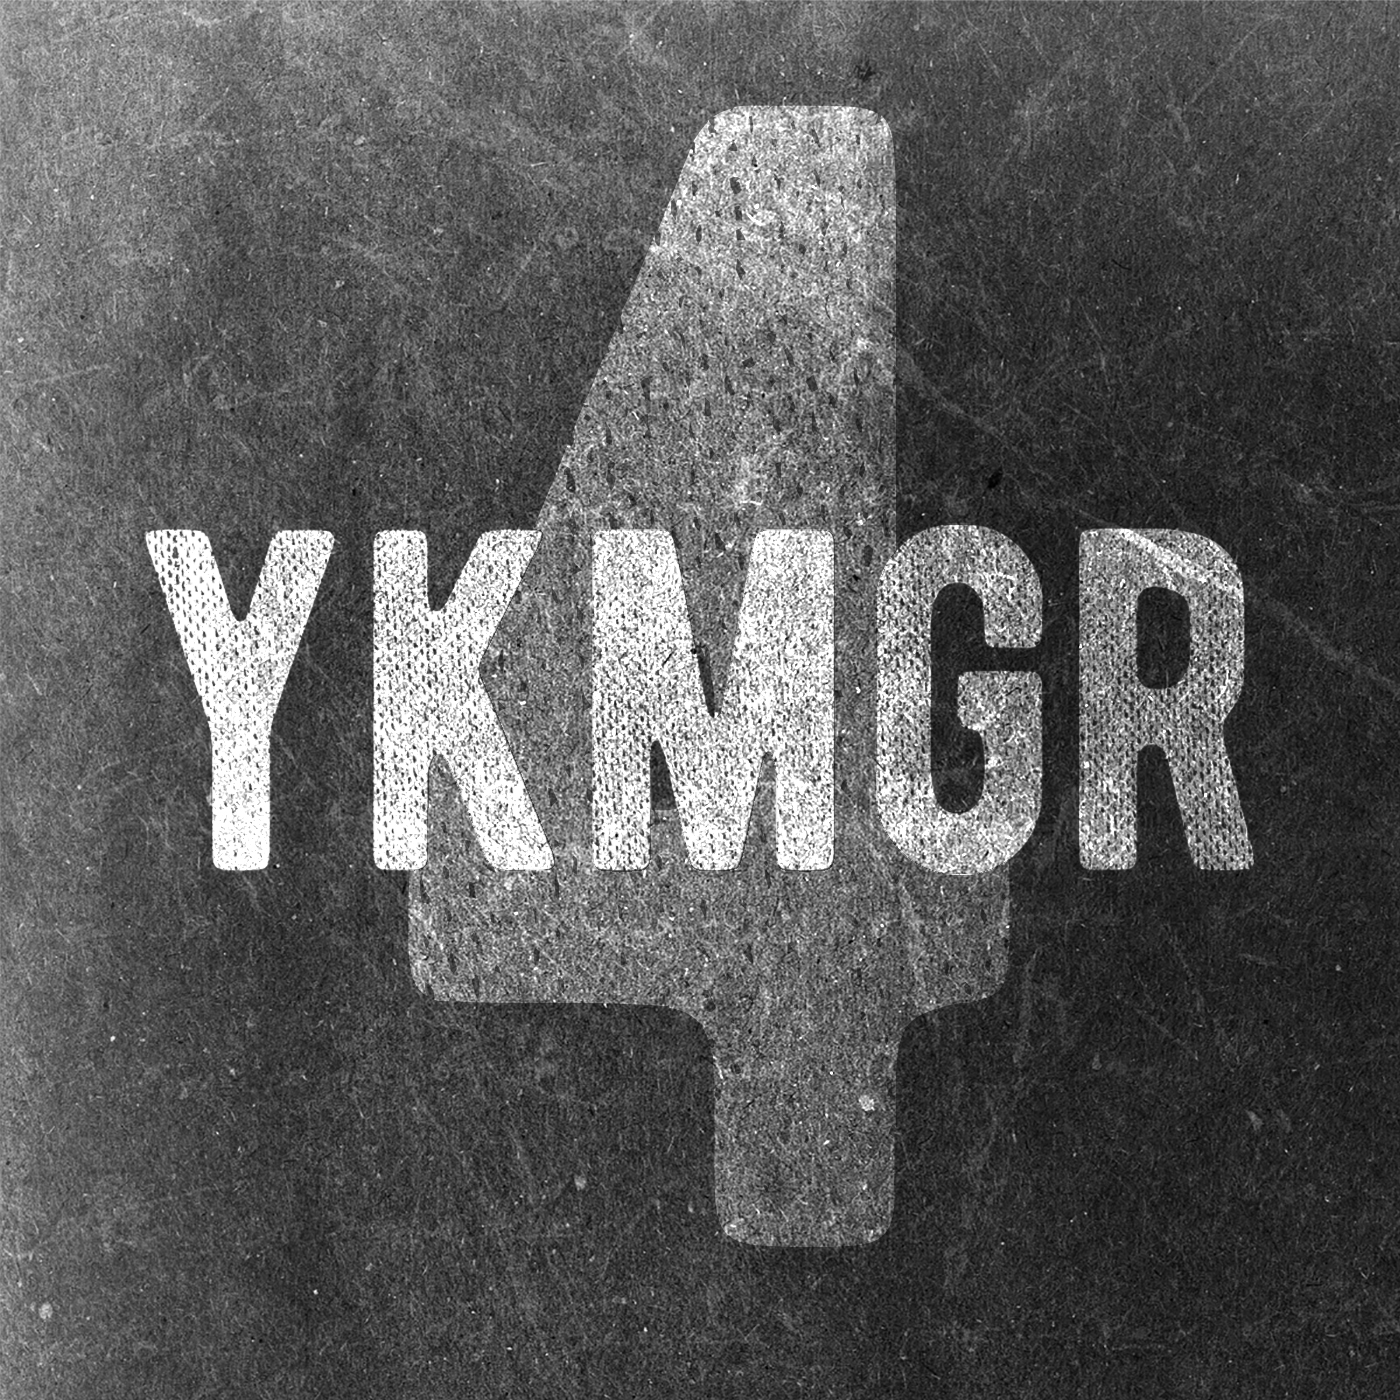 YKMGR 04.png